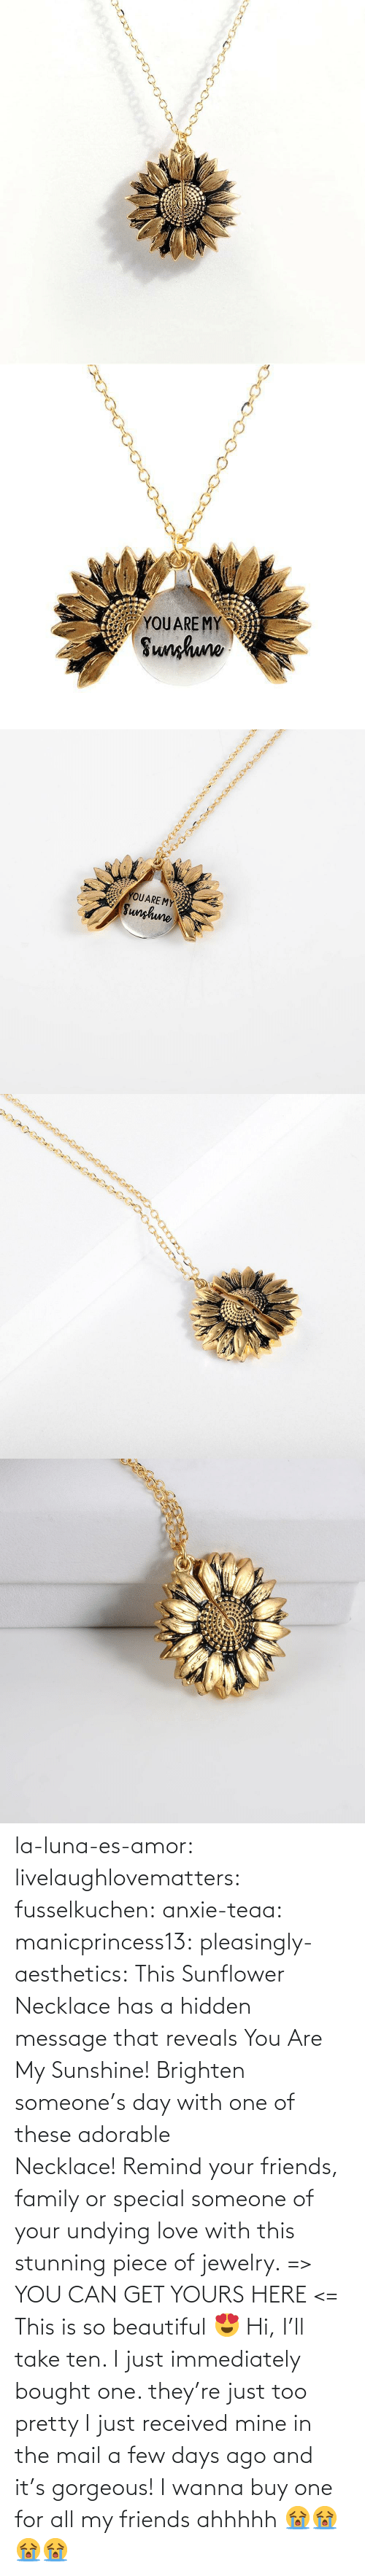 Brighten: YOUARE MY  Sunhuno   YOUARE MY  Sunghune la-luna-es-amor:  livelaughlovematters: fusselkuchen:  anxie-teaa:   manicprincess13:   pleasingly-aesthetics:  This Sunflower Necklace has a hidden message that reveals You Are My Sunshine! Brighten someone's day with one of these adorable Necklace! Remind your friends, family or special someone of your undying love with this stunning piece of jewelry. => YOU CAN GET YOURS HERE <=   This is so beautiful 😍    Hi, I'll take ten.    I just immediately bought one. they're just too pretty   I just received mine in the mail a few days ago and it's gorgeous!   I wanna buy one for all my friends ahhhhh 😭😭😭😭